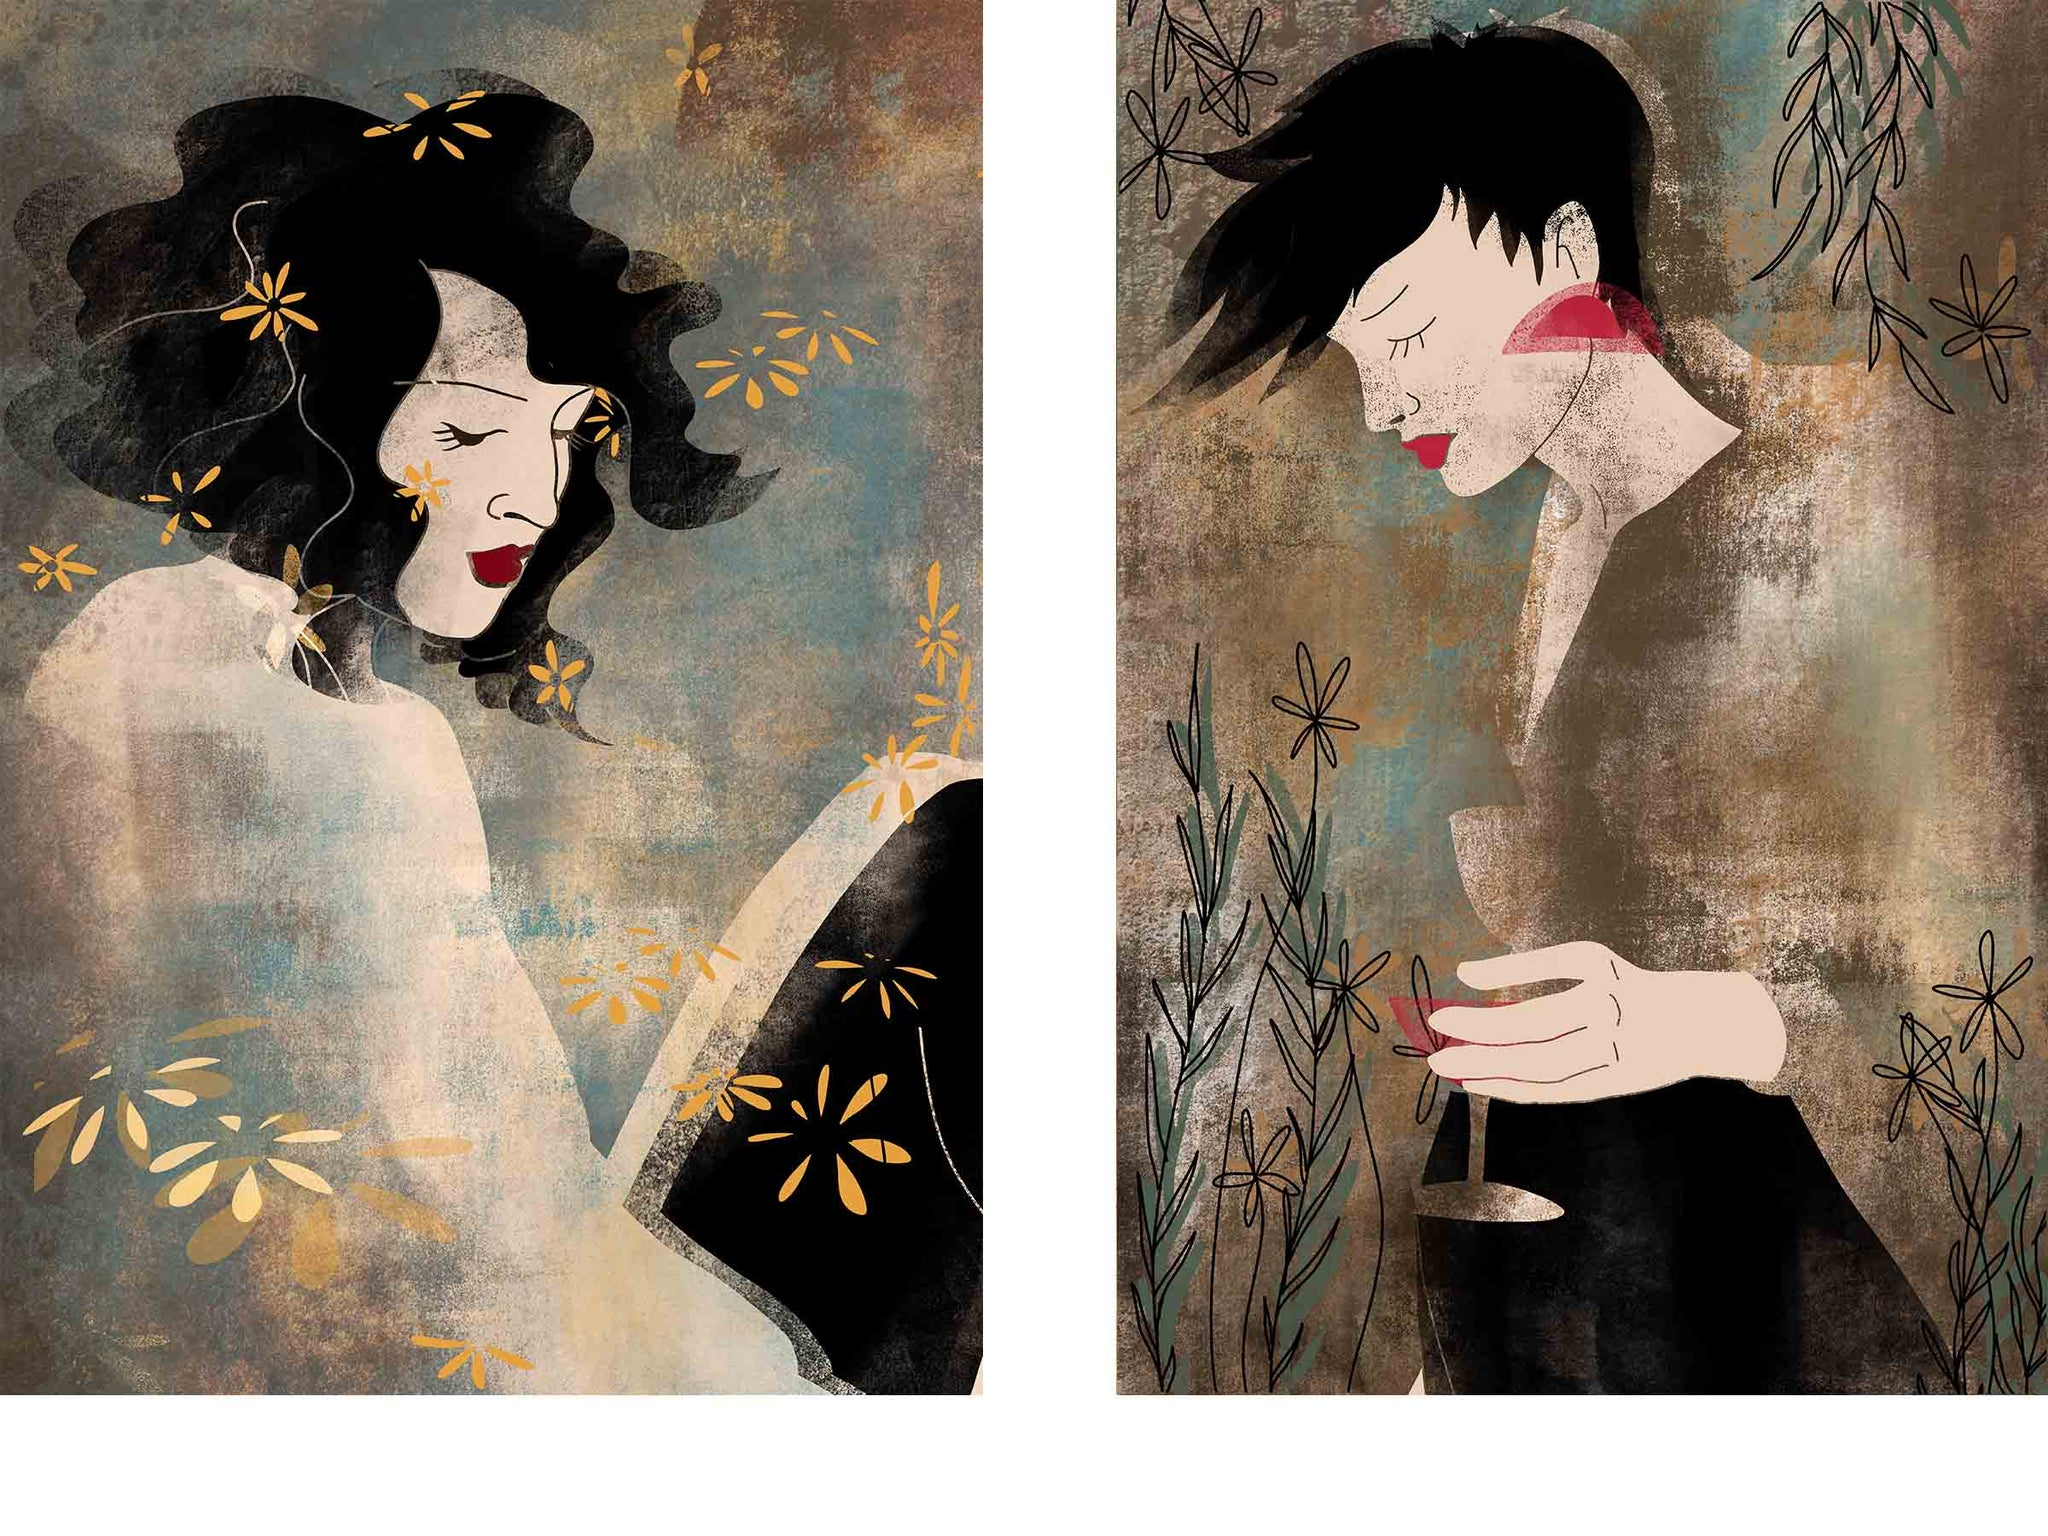 two separate stylized illustrated female portraits, both surrounded with flowers, the one on the left is sitting and looking down, the one on the right has a glass of red wine in her hand